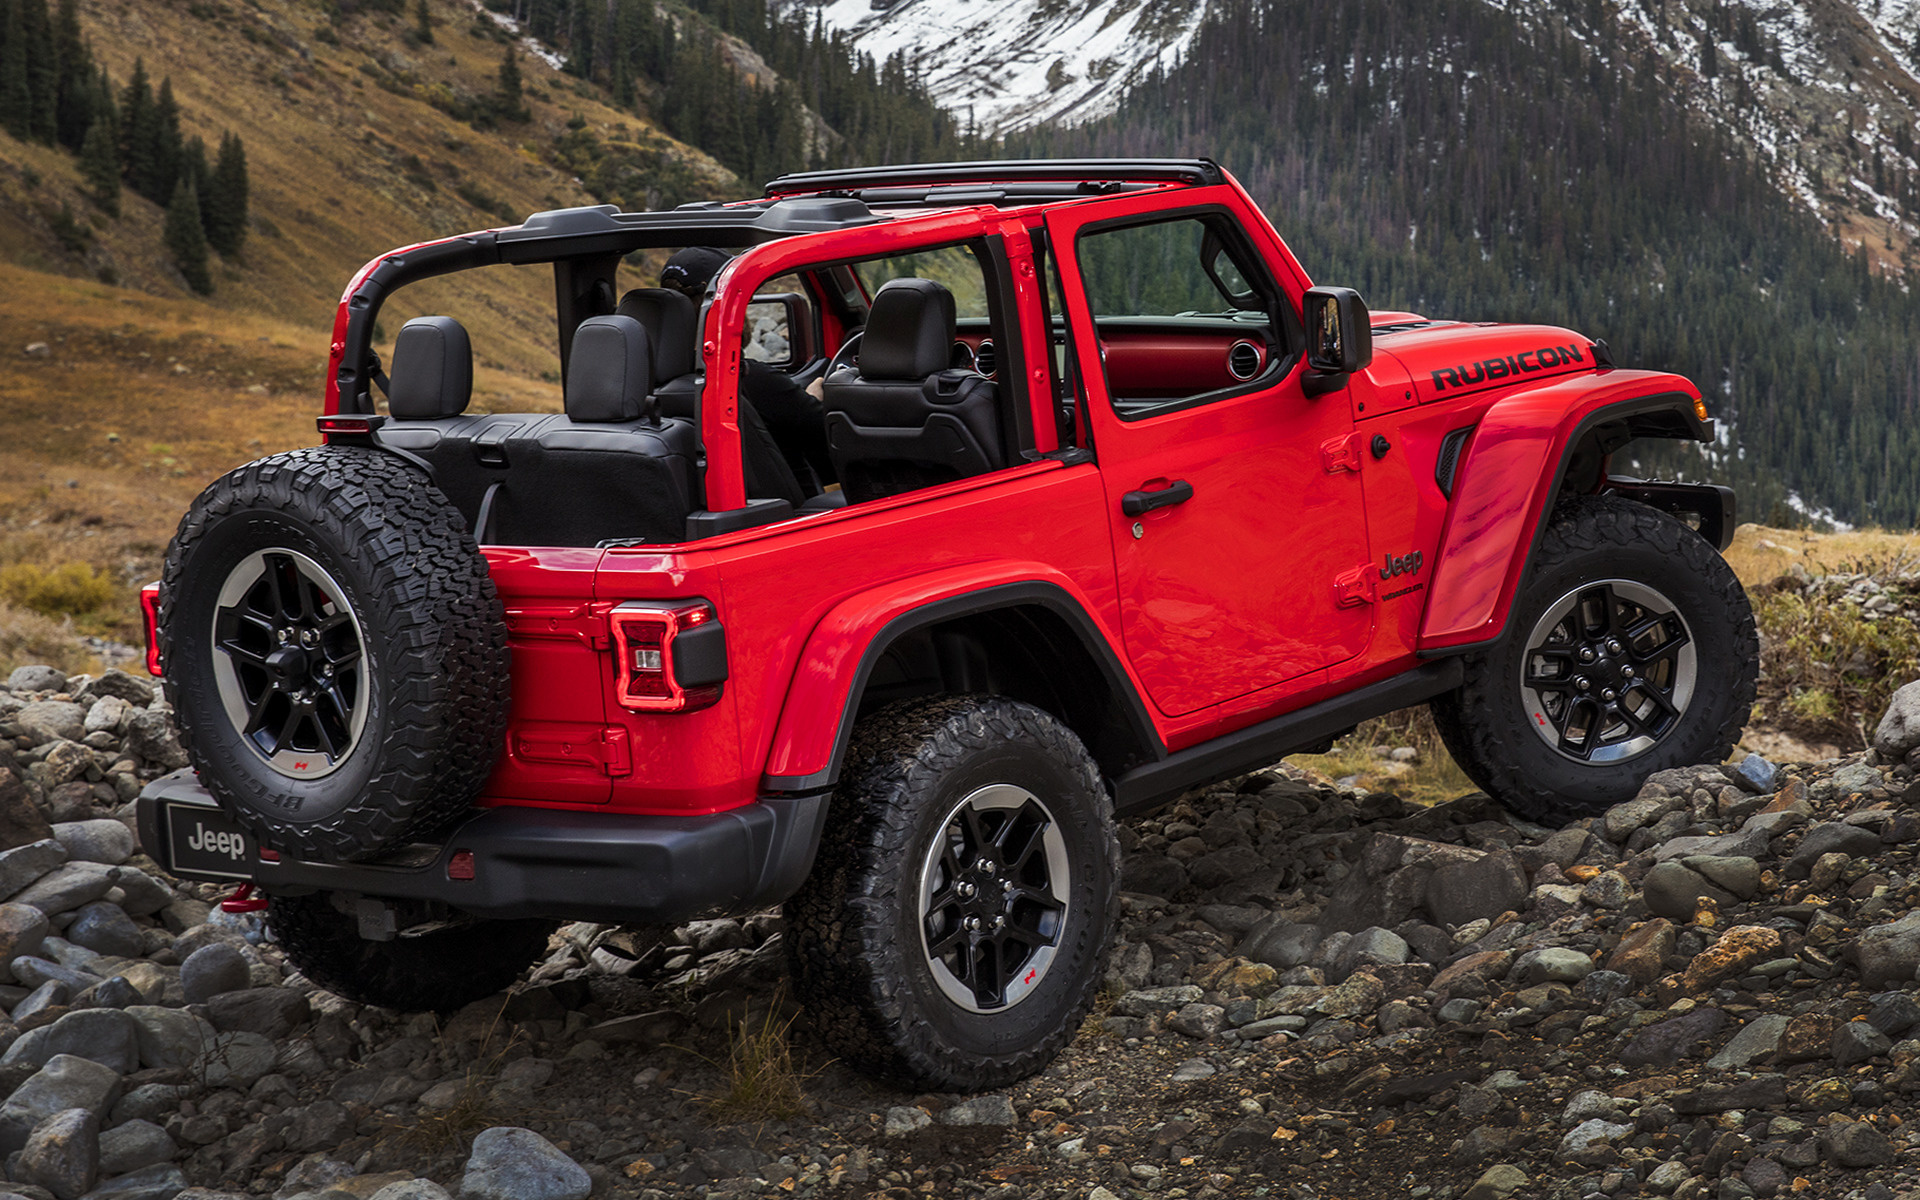 2018 Jeep Wrangler Rubicon - Wallpapers and HD Images | Car Pixel